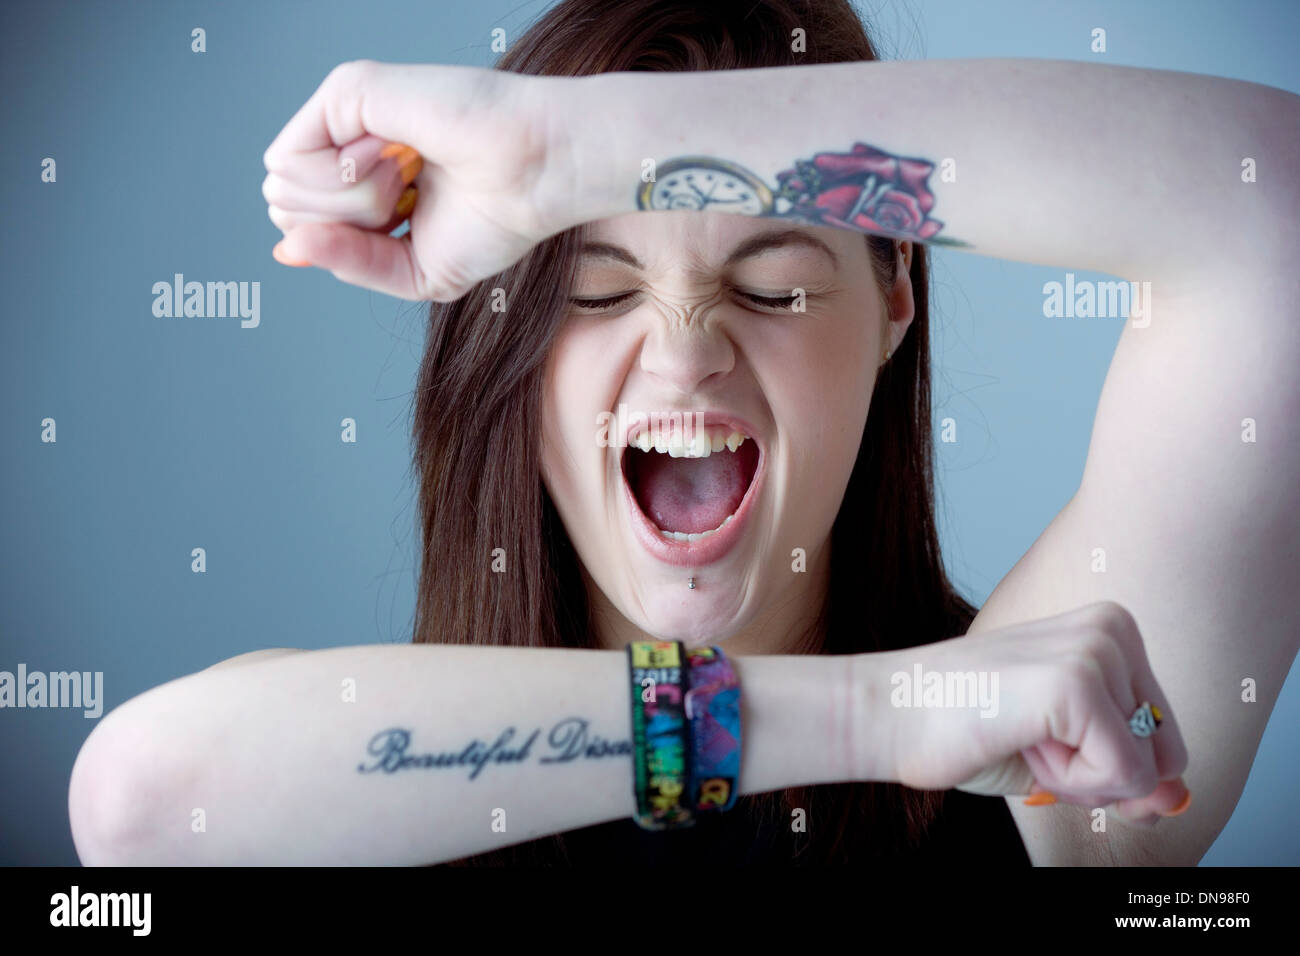 Teenage girl screaming with raised arms. - Stock Image